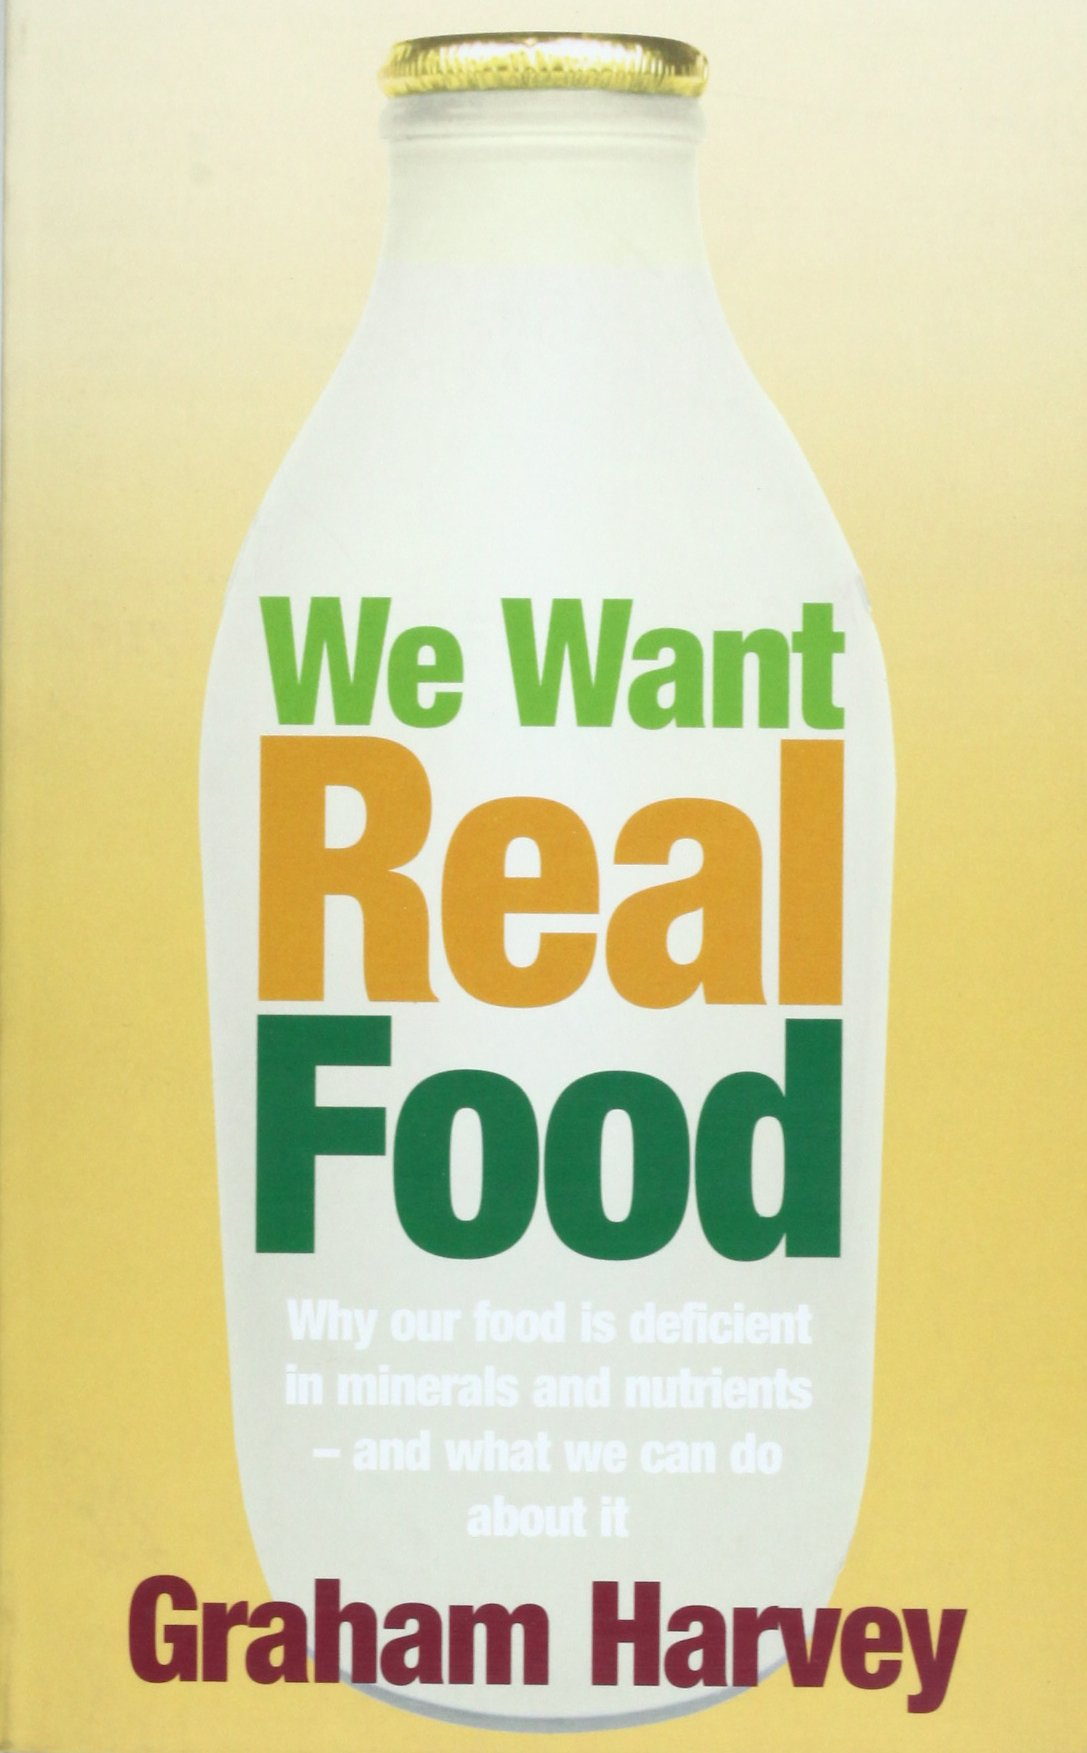 We Want Real Food: Why Our Food Is Deficient In Minerals And Nutrients   And What We Can Do About It: Graham Harvey: 9781845292676: Amazon: Books